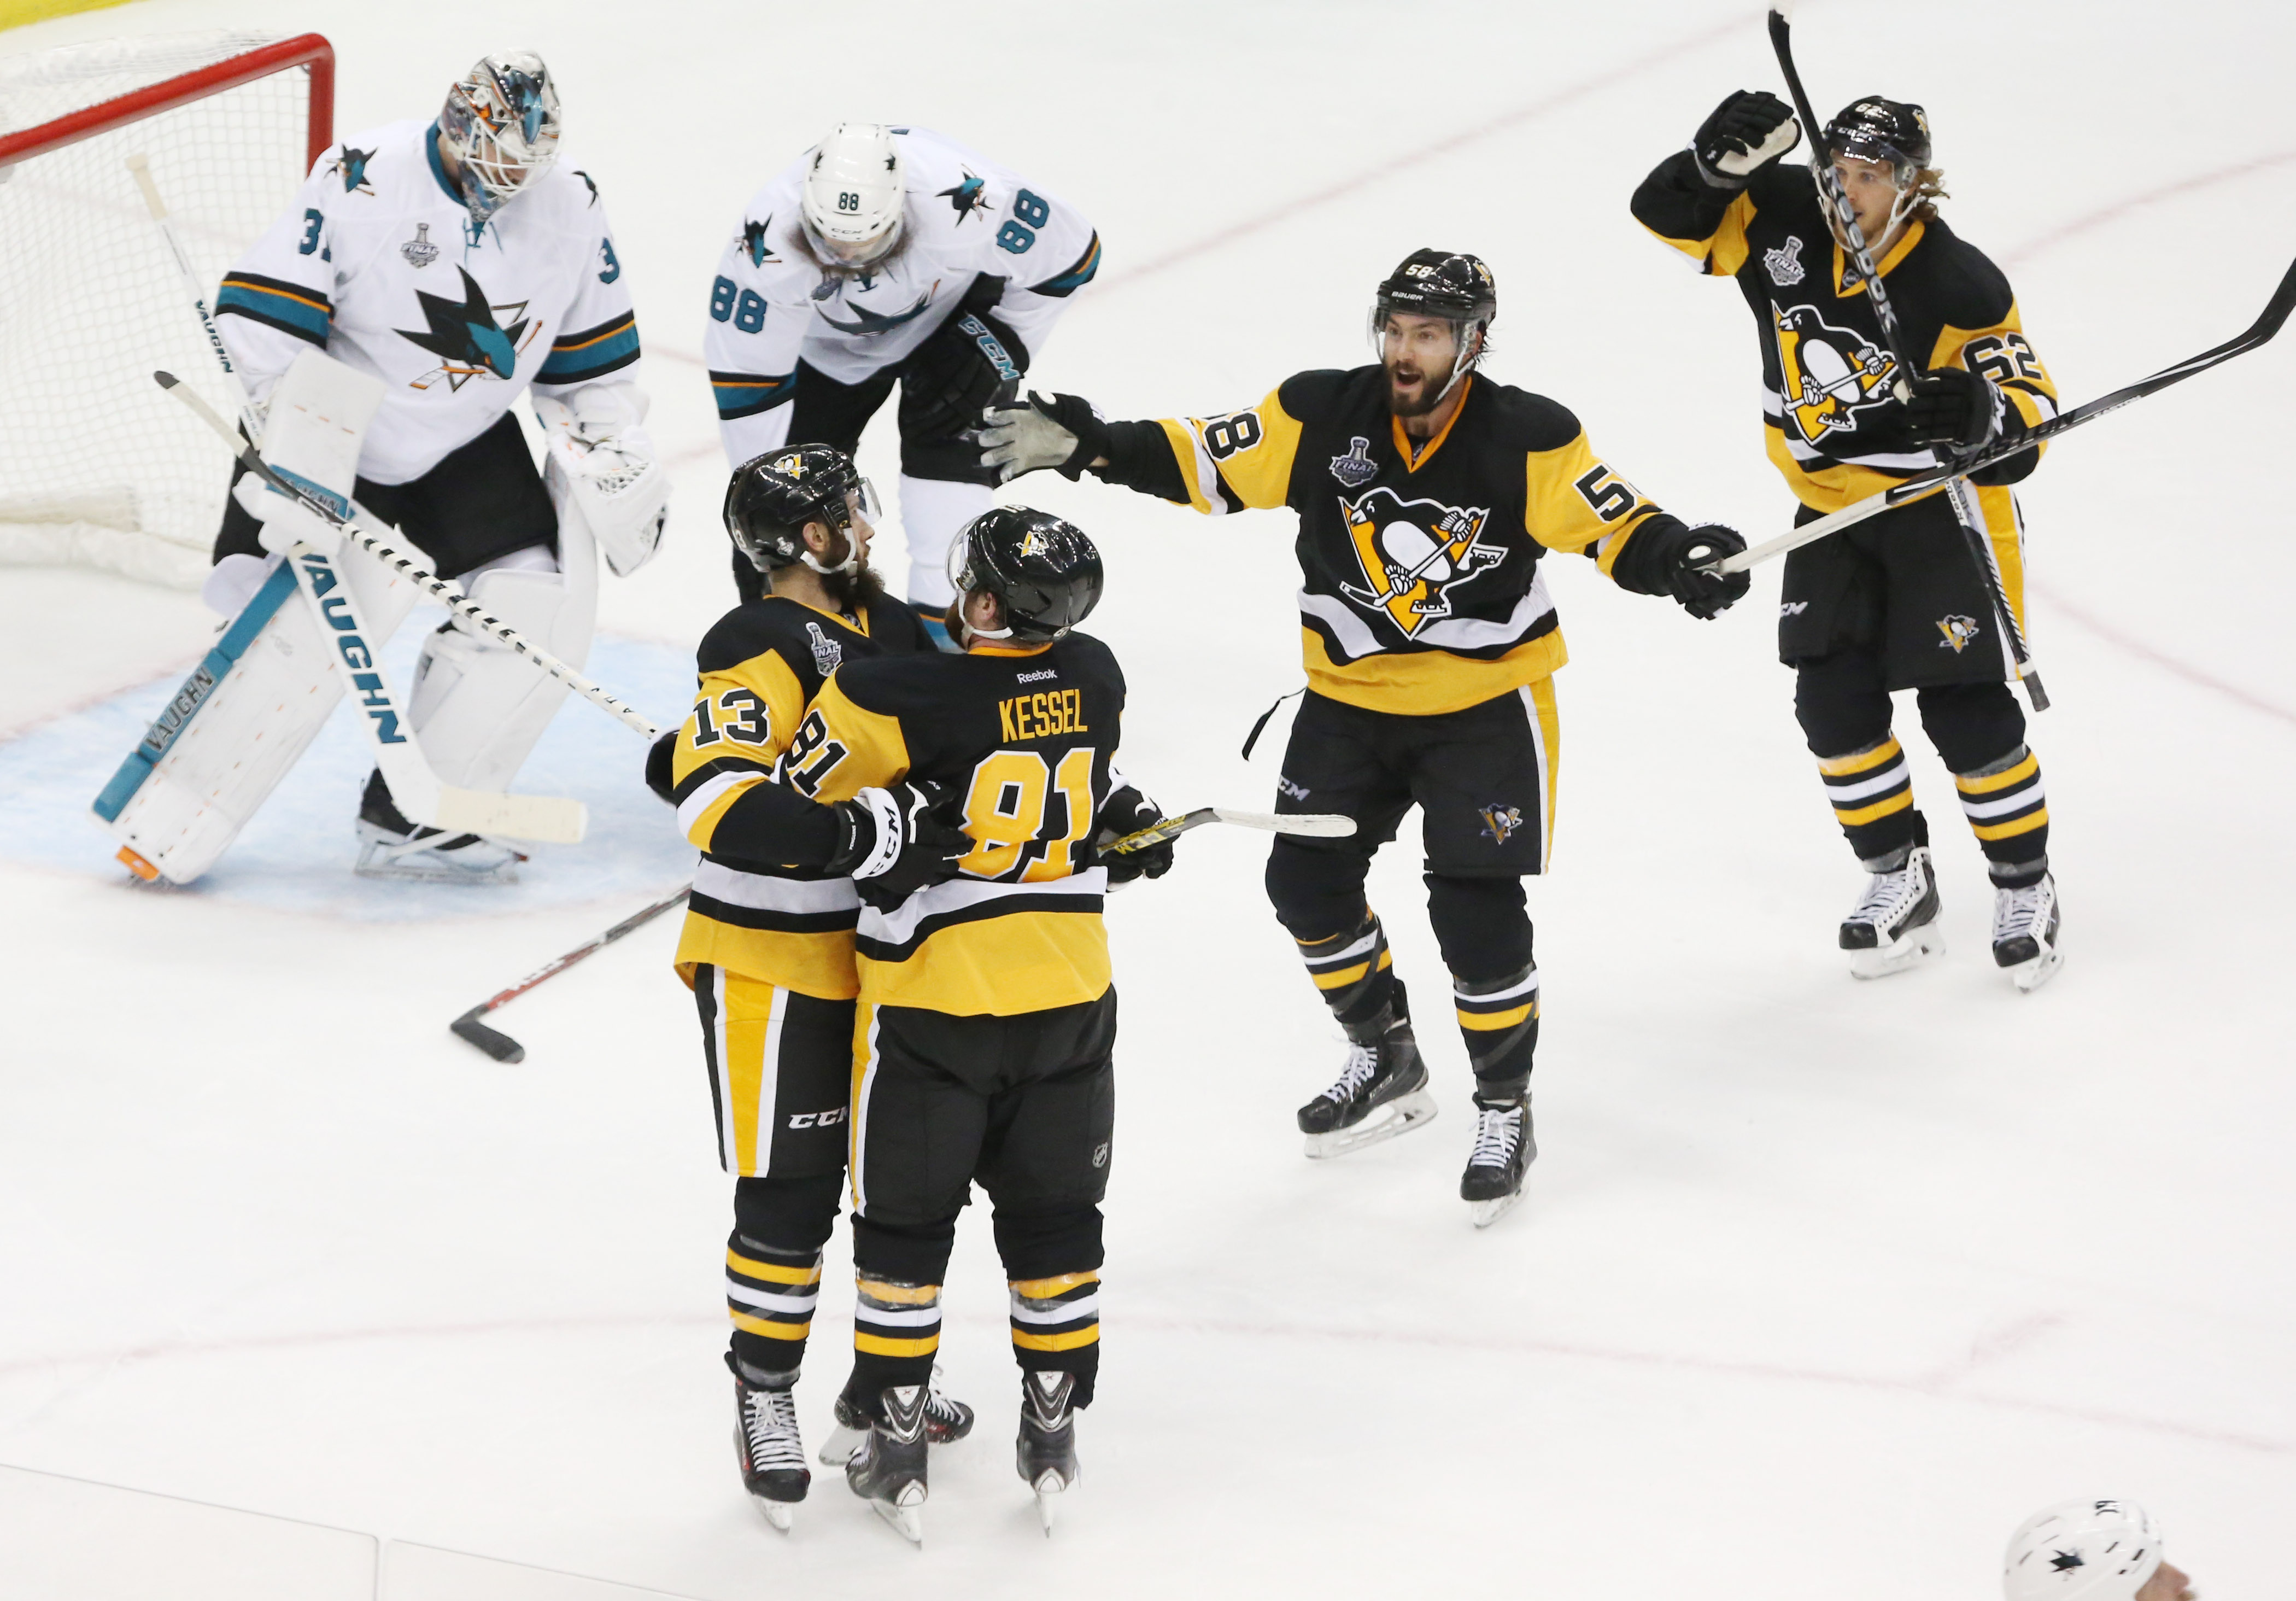 Stanley Cup Final 2016 scores: Penguins, Sharks put on a show in Game 1